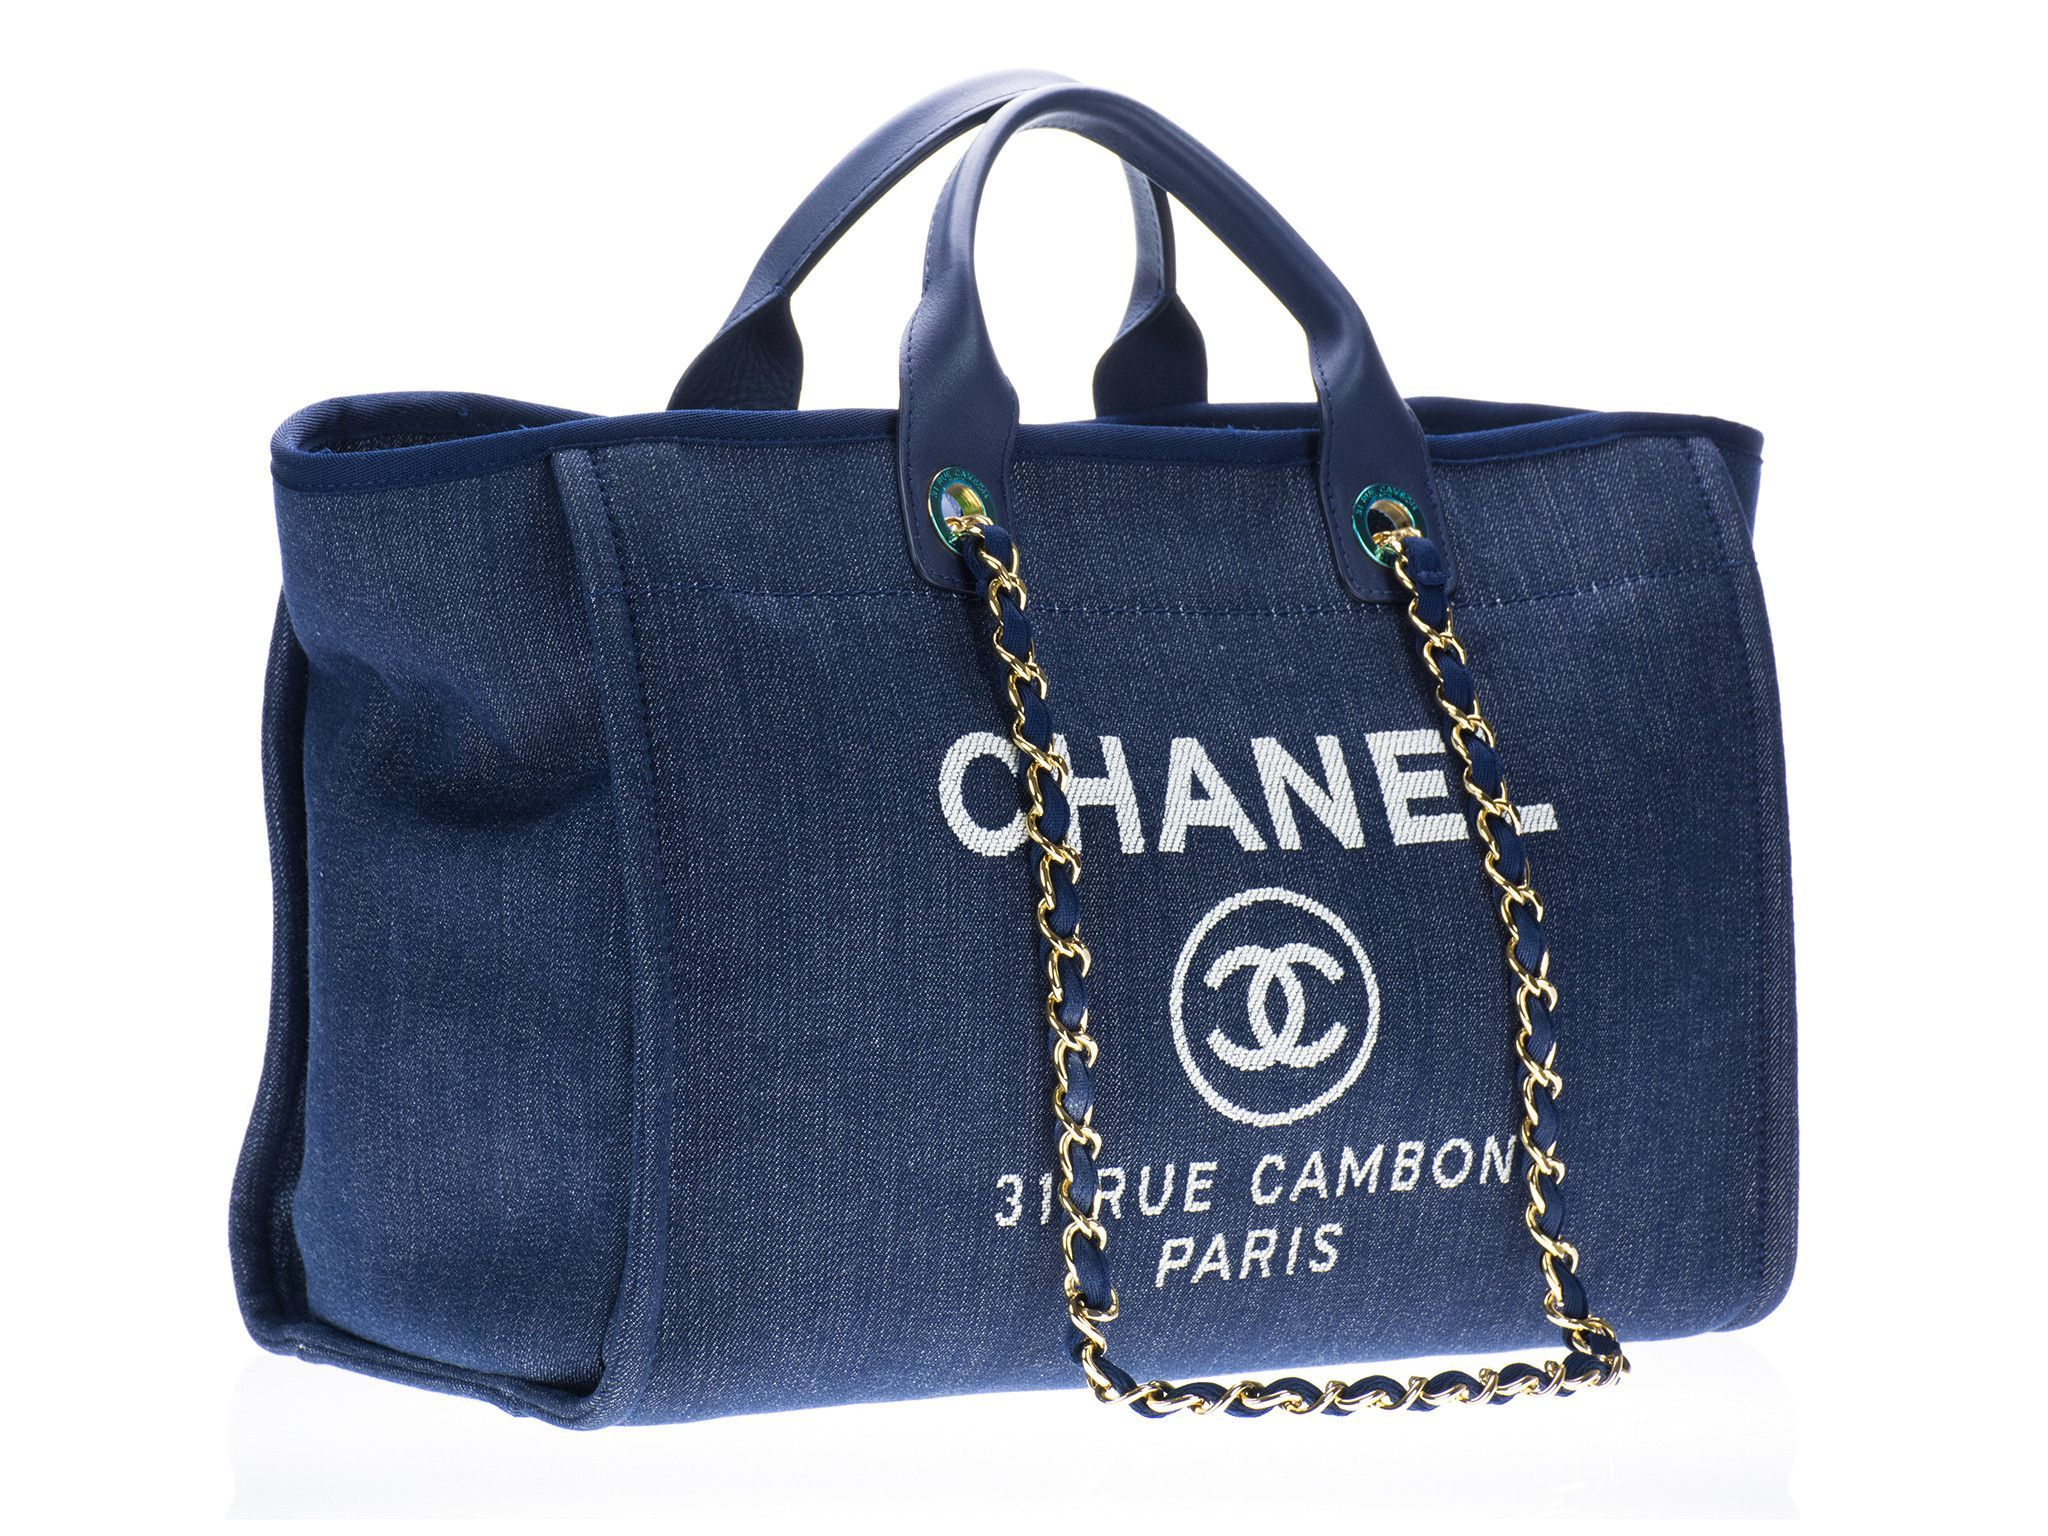 bb7ea6de212b Chanel Deauville Blue Canvas Tote Bag